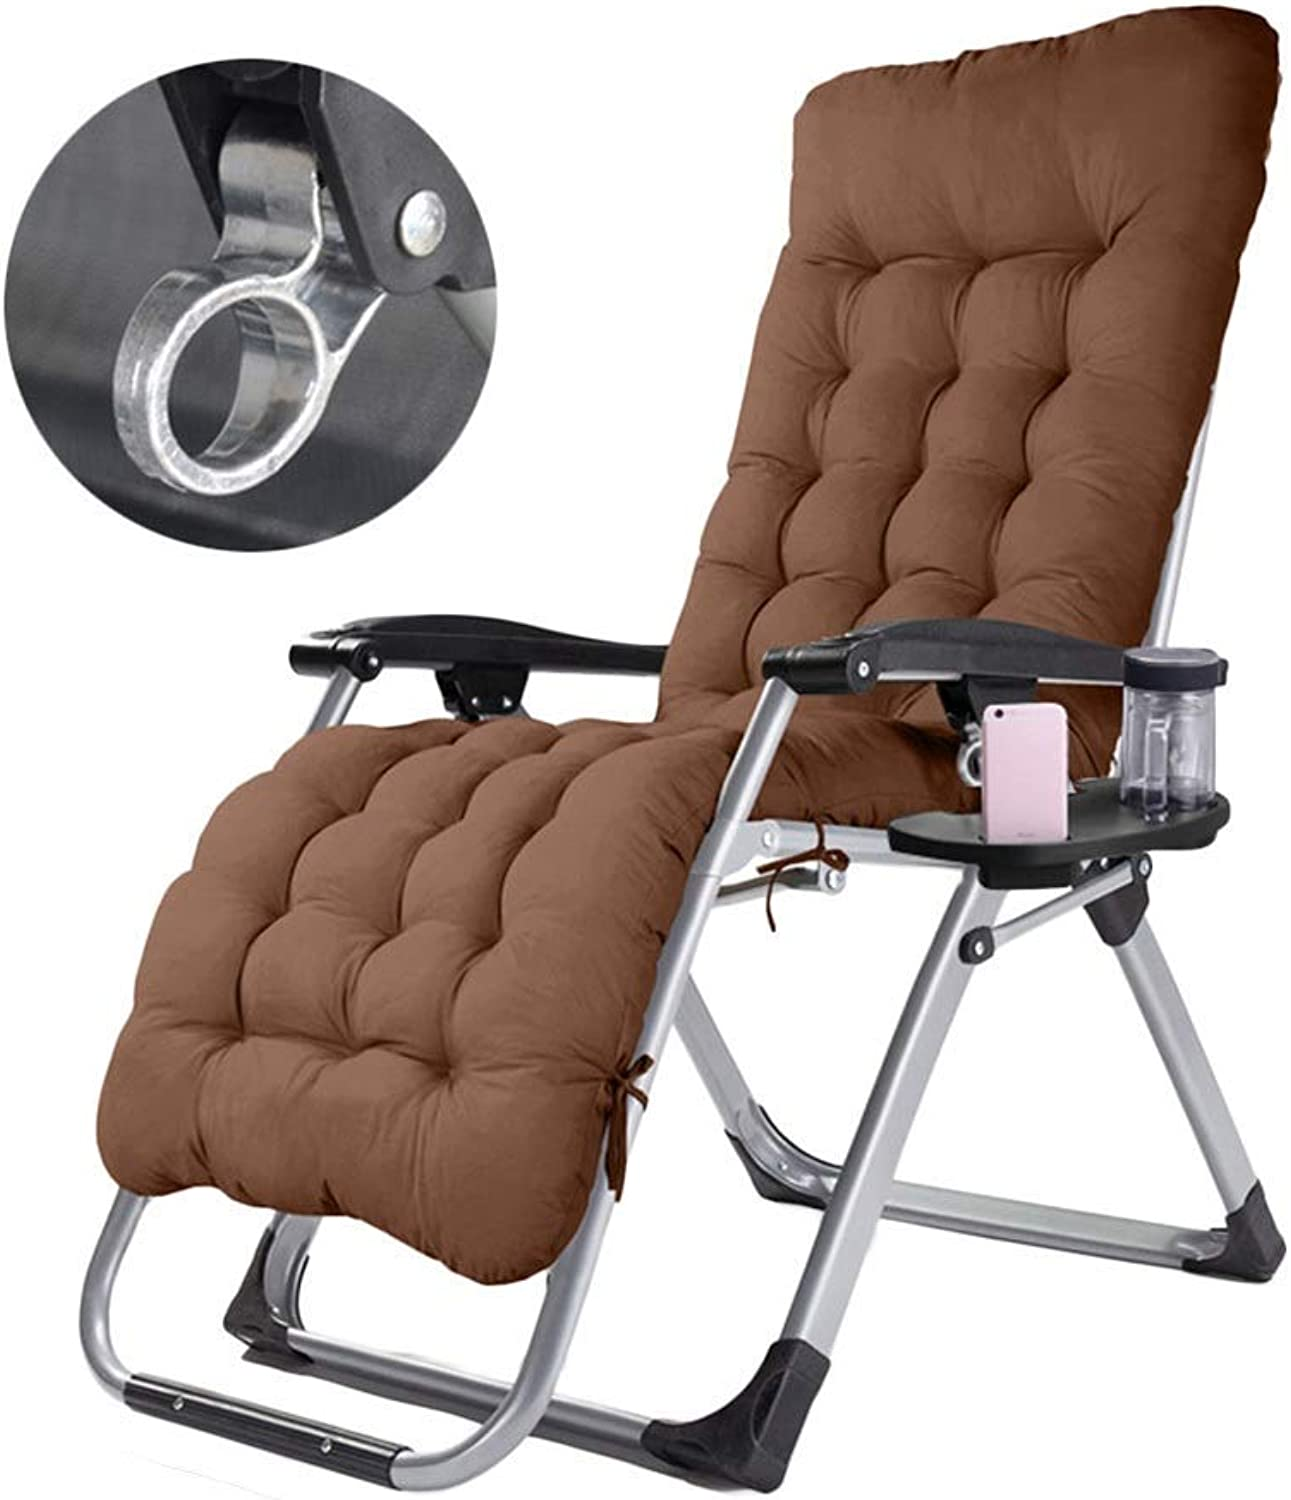 Oversized Patio Chairs Reclining with Cushions for Heavy People, Zero Gravity Chair for Outdoor Camping Travel Portable Chairs, Support 200kg,A